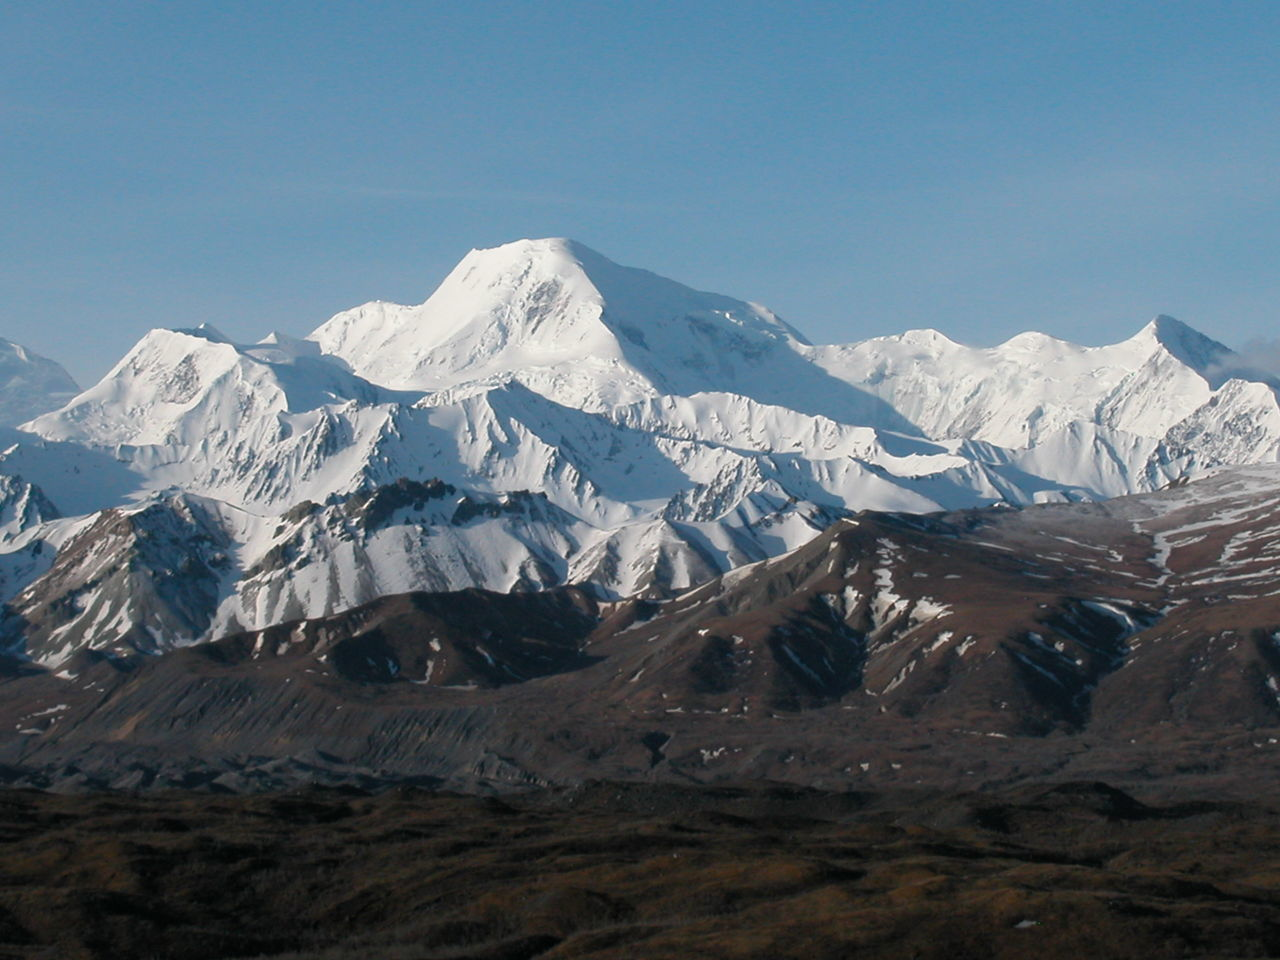 Alaska Beauty In Nature Day Landscape Mountain Mountain Range Mt Denali Mt McKinley Nature No People Outdoors Scenics Sky Snow Snowcapped Mountain Tranquility